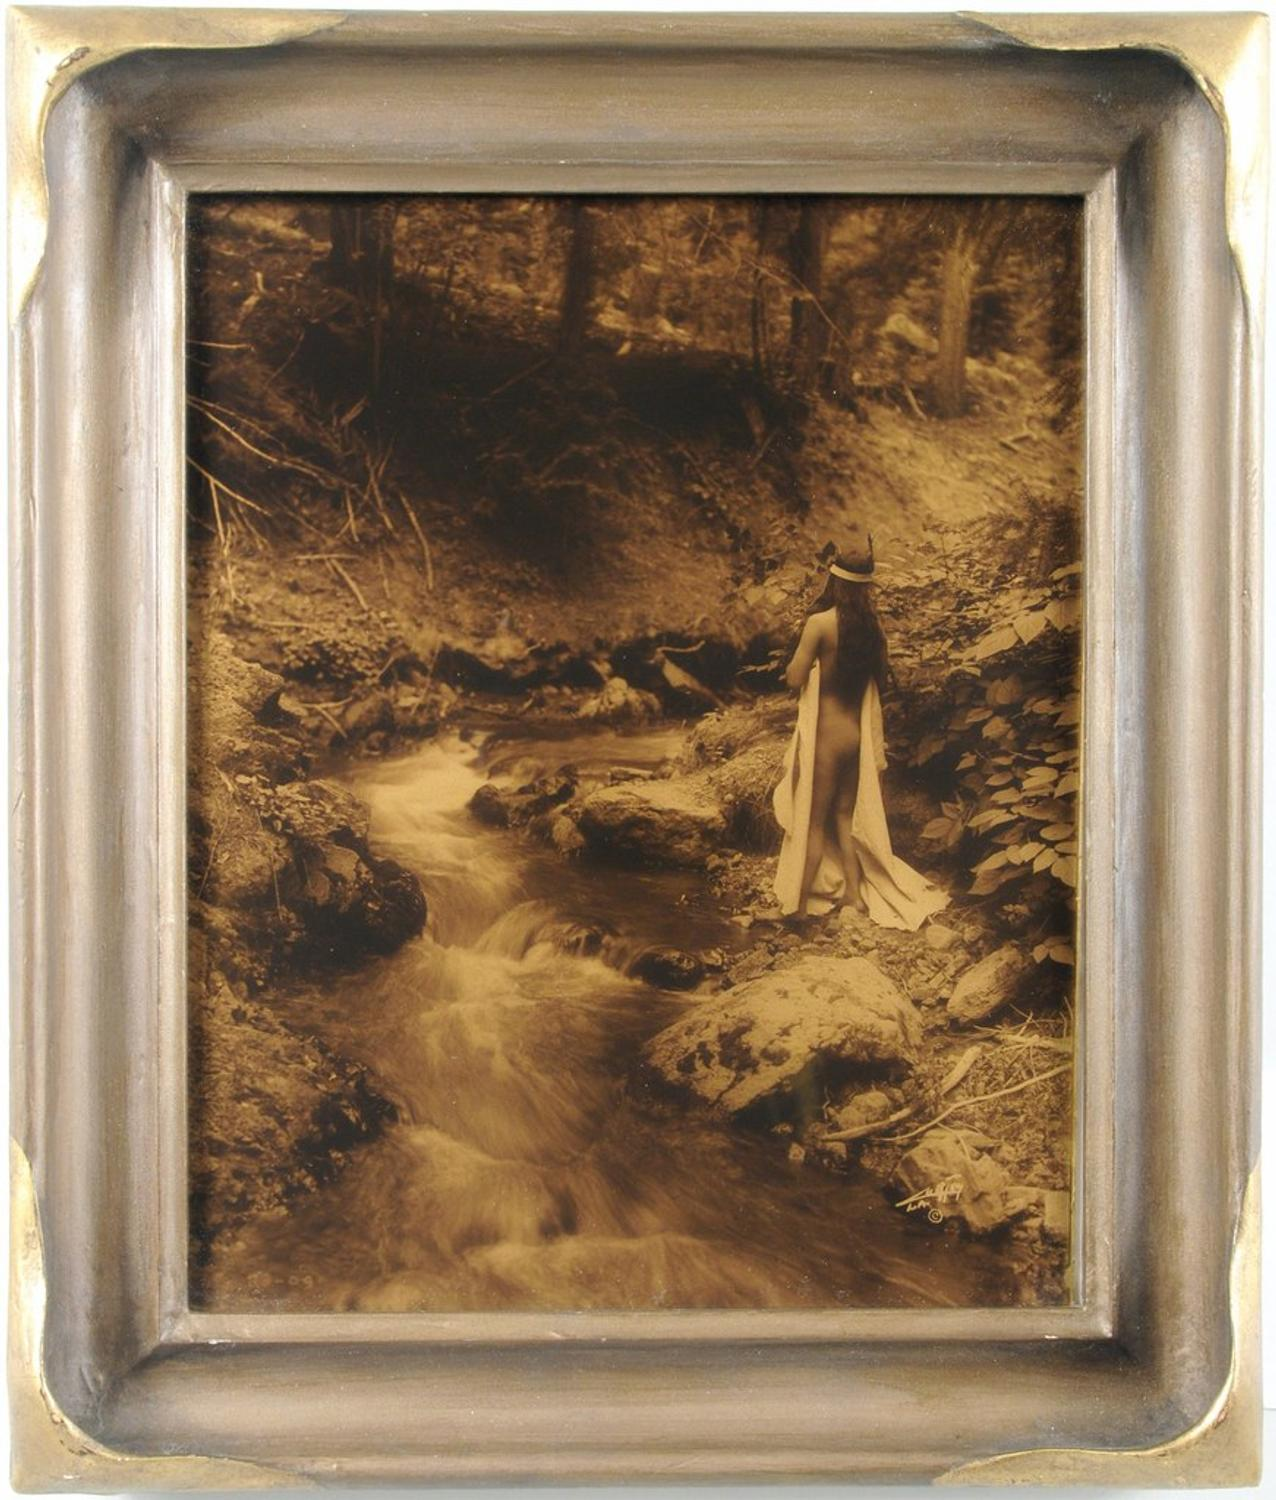 Rare Edward S Curtis Orotone Quot Maid Of Dreams Quot Surfaces At